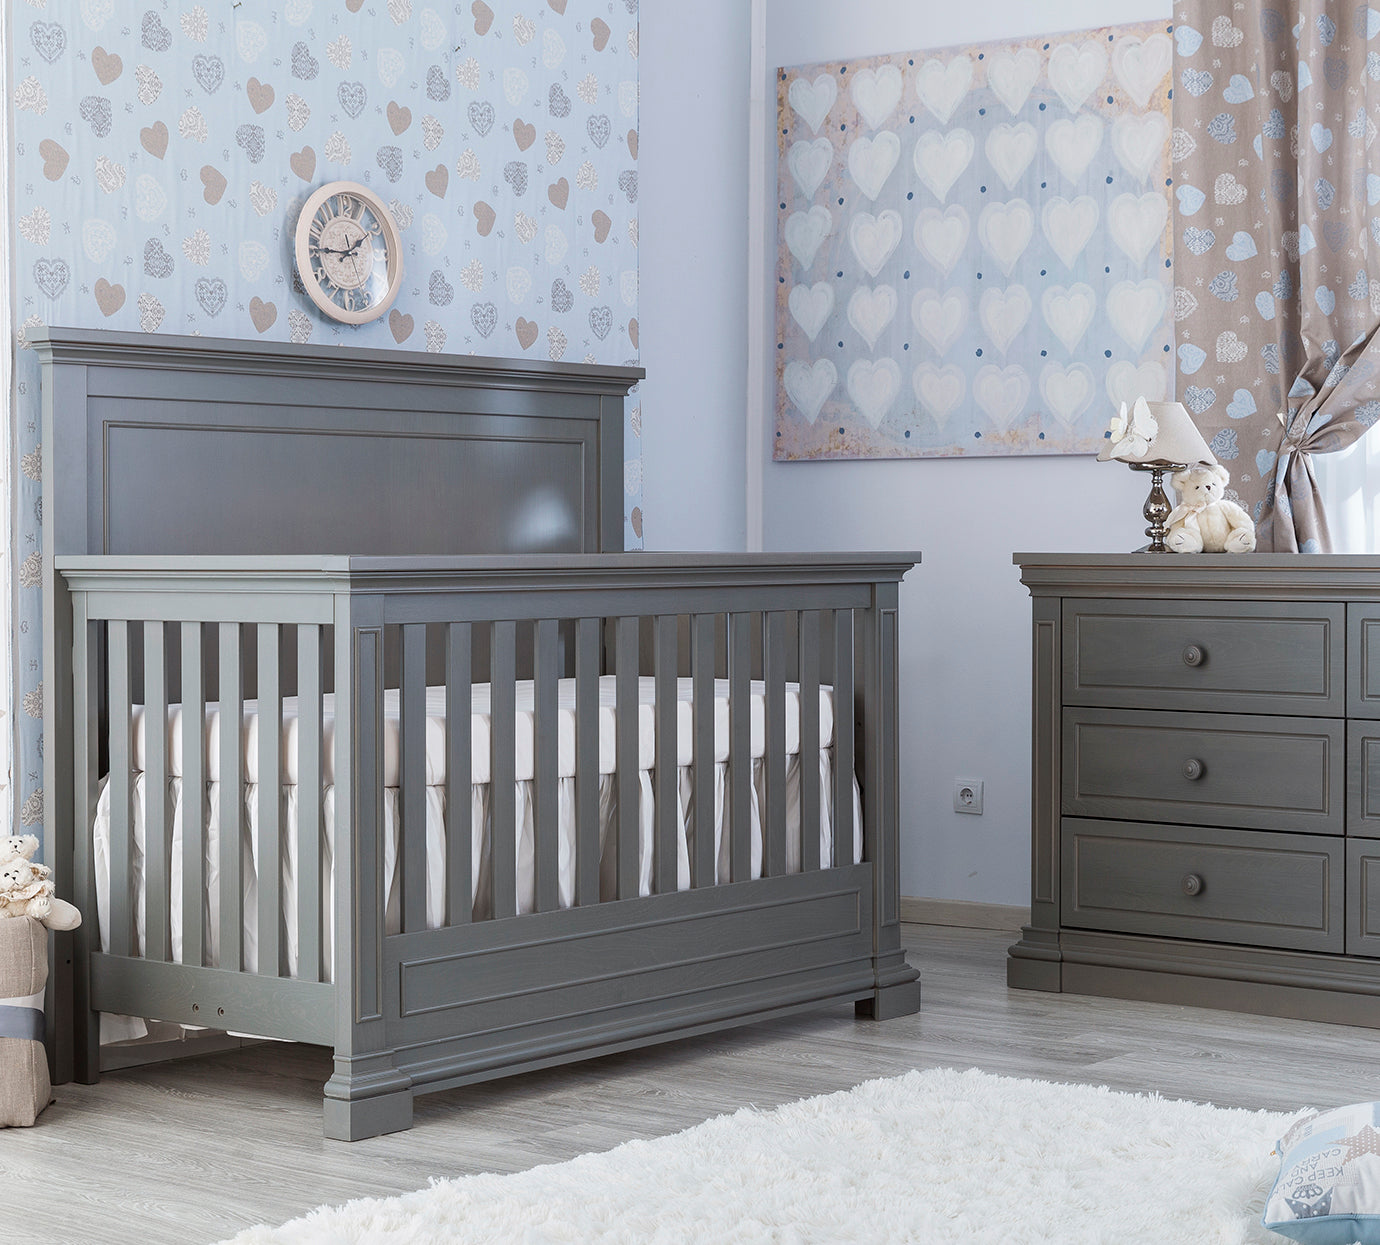 Jackson Convertible Crib Tested And Certified Solid